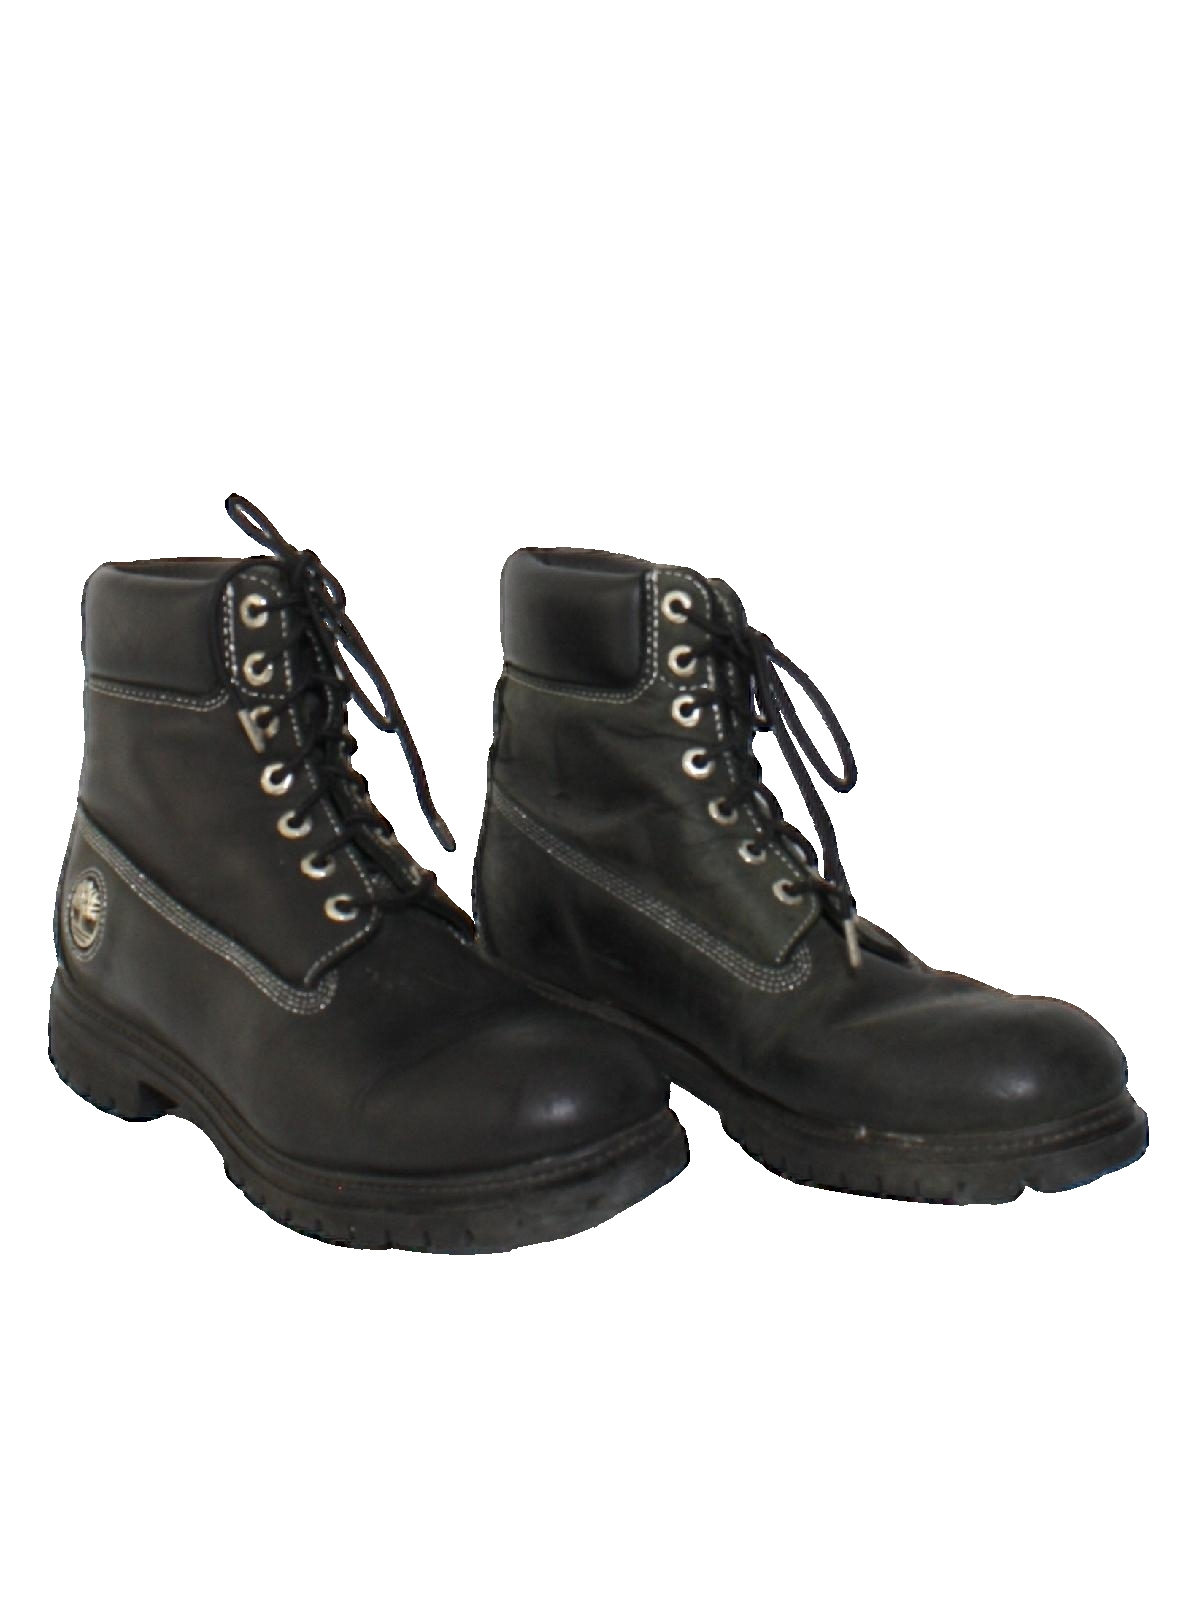 1990's Timberland Mens Boots Shoes